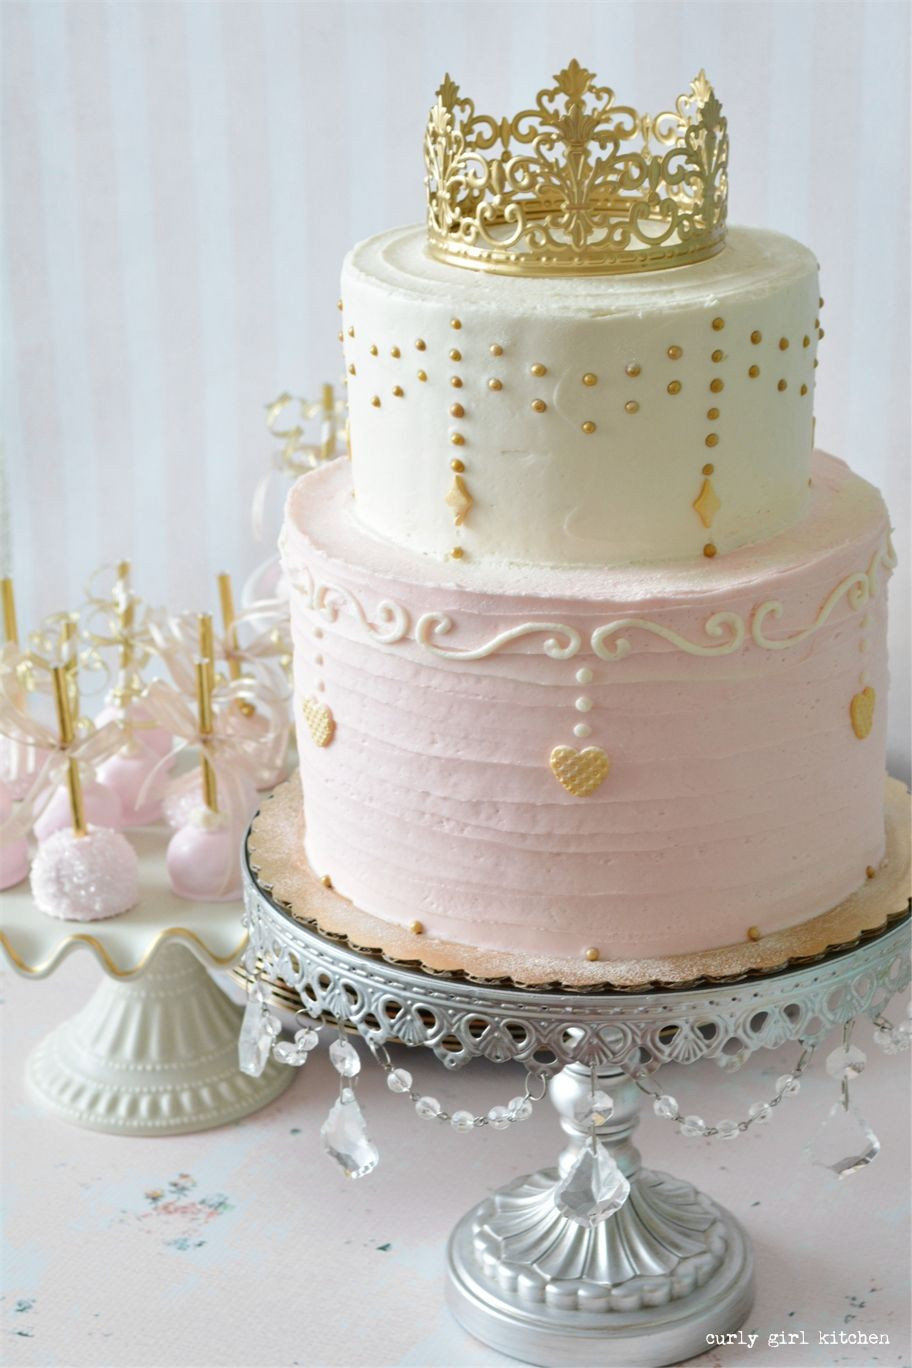 Best ideas about Birthday Cake Ideas For Girls . Save or Pin Pink and Gold Princess Party Cake in 2019 Now.